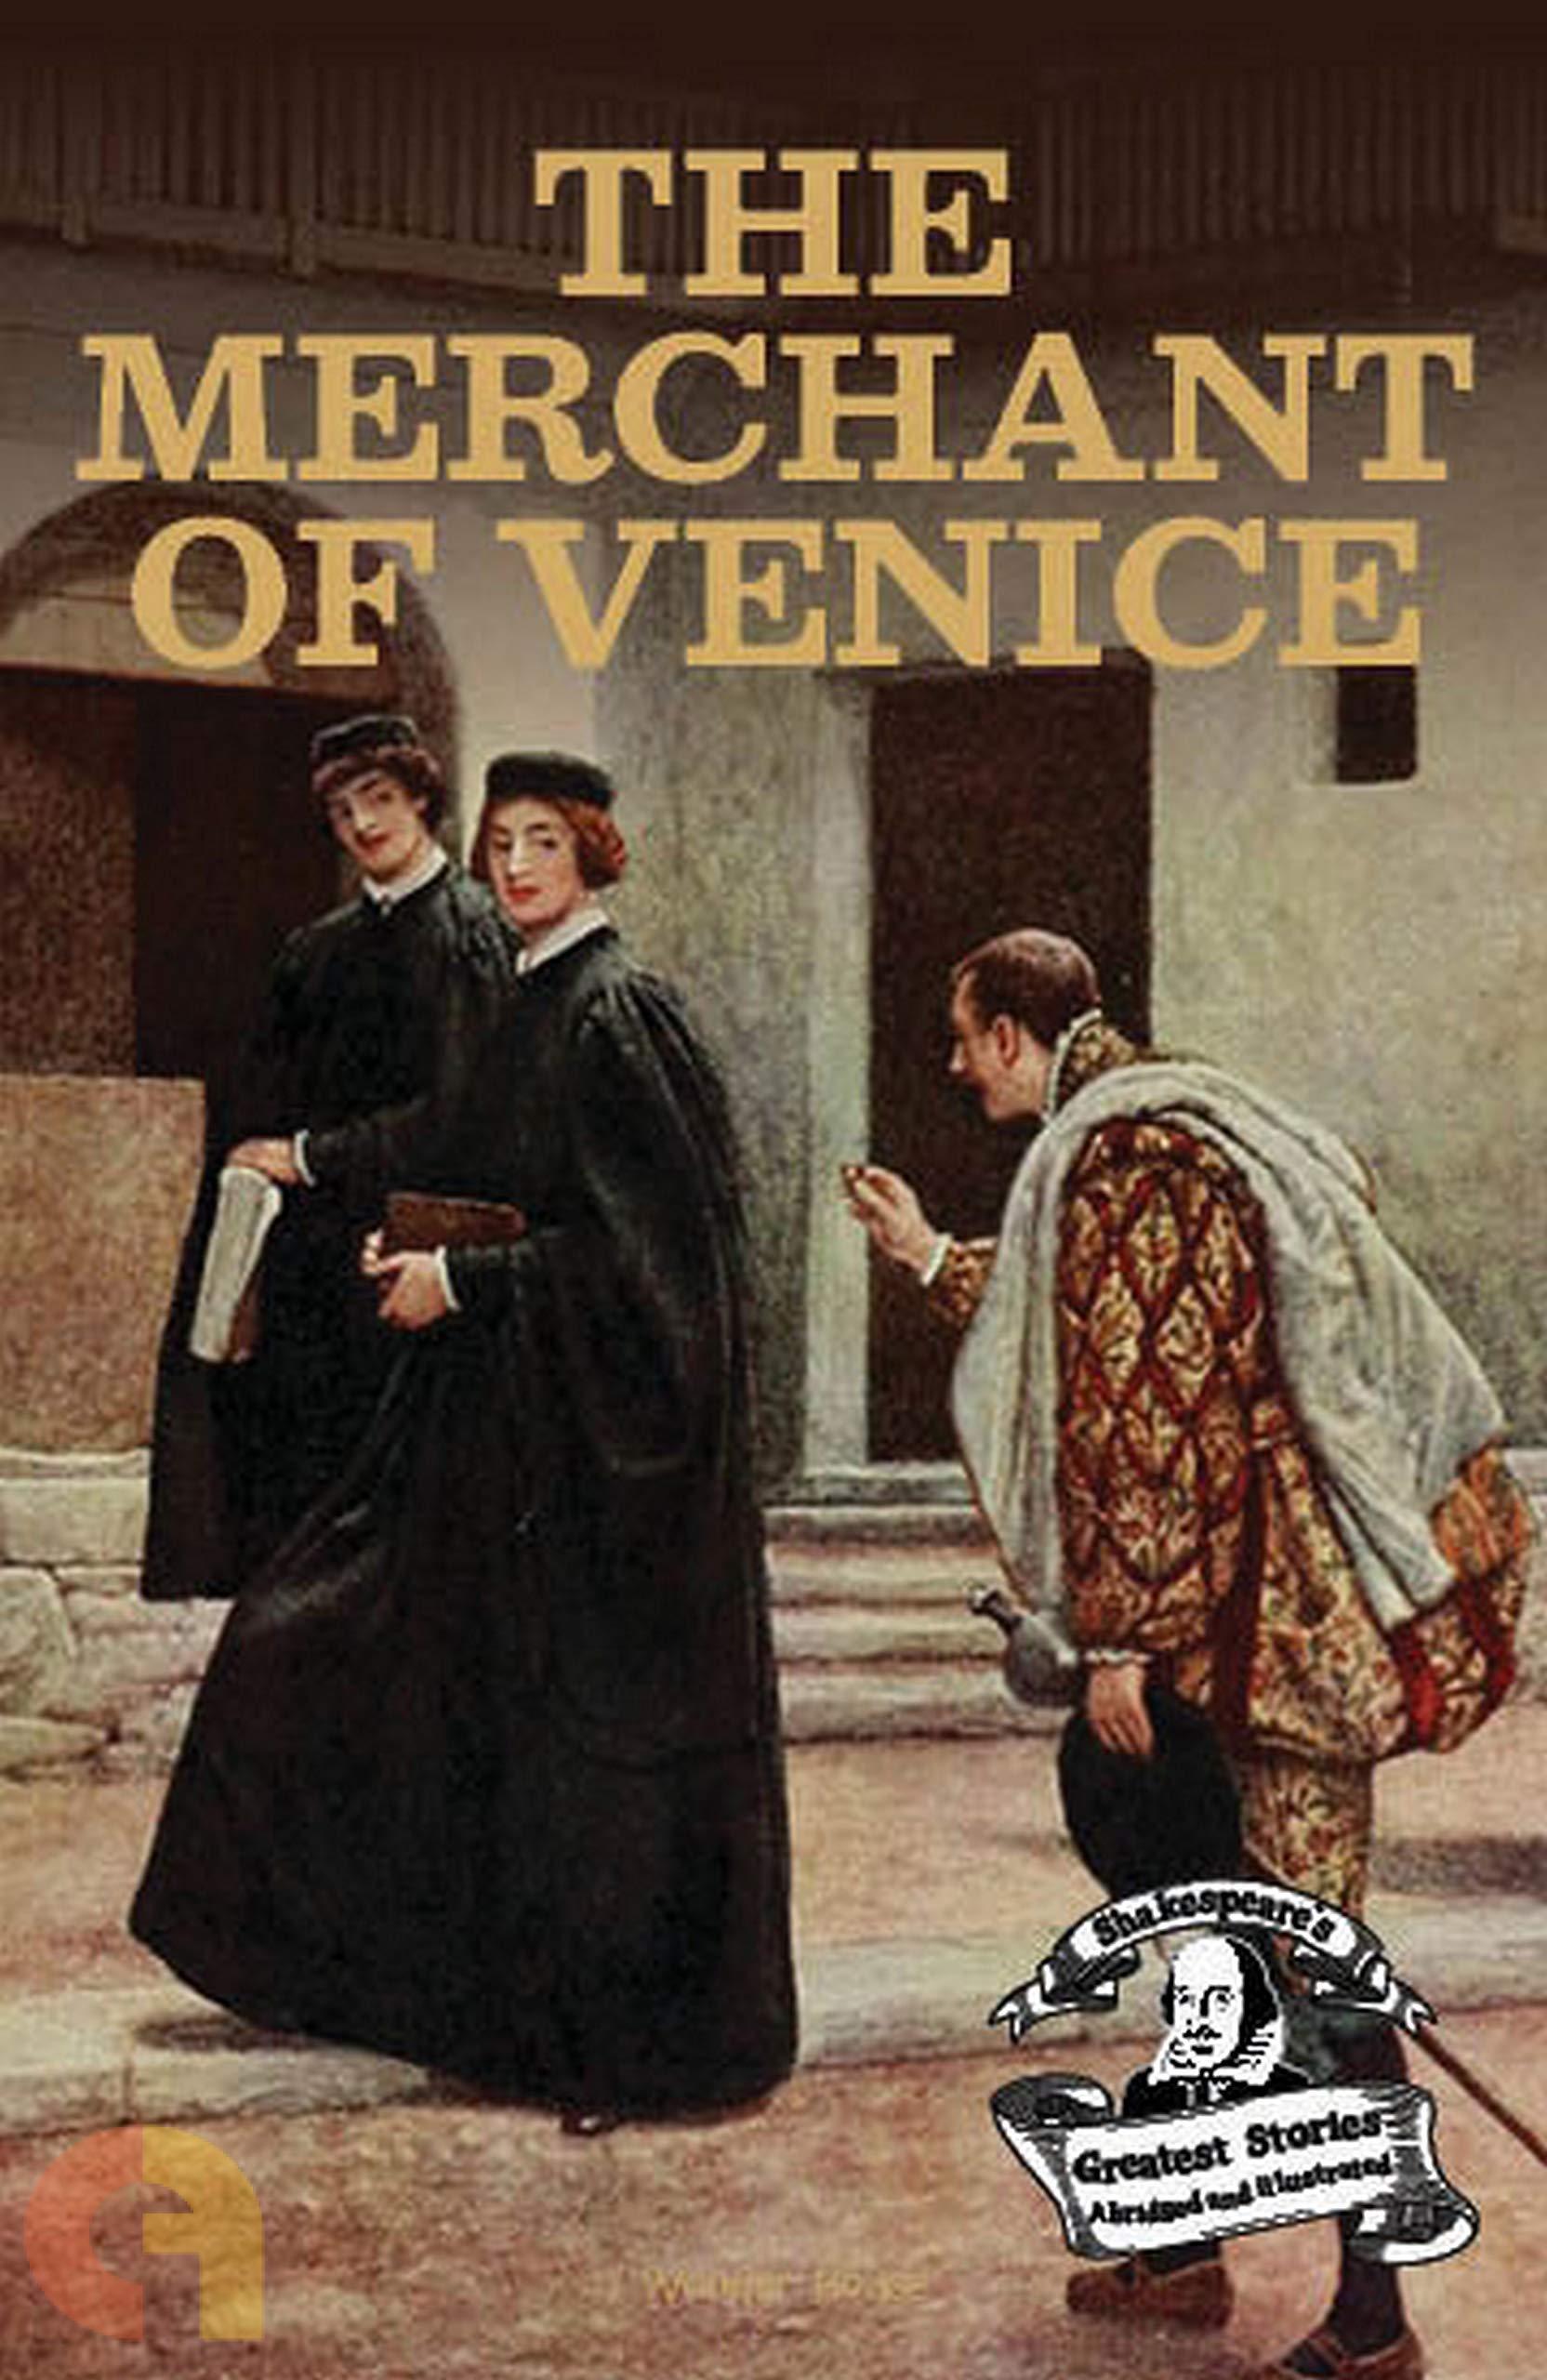 The Merchant of Venice: Shakespeare's Greatest Stories